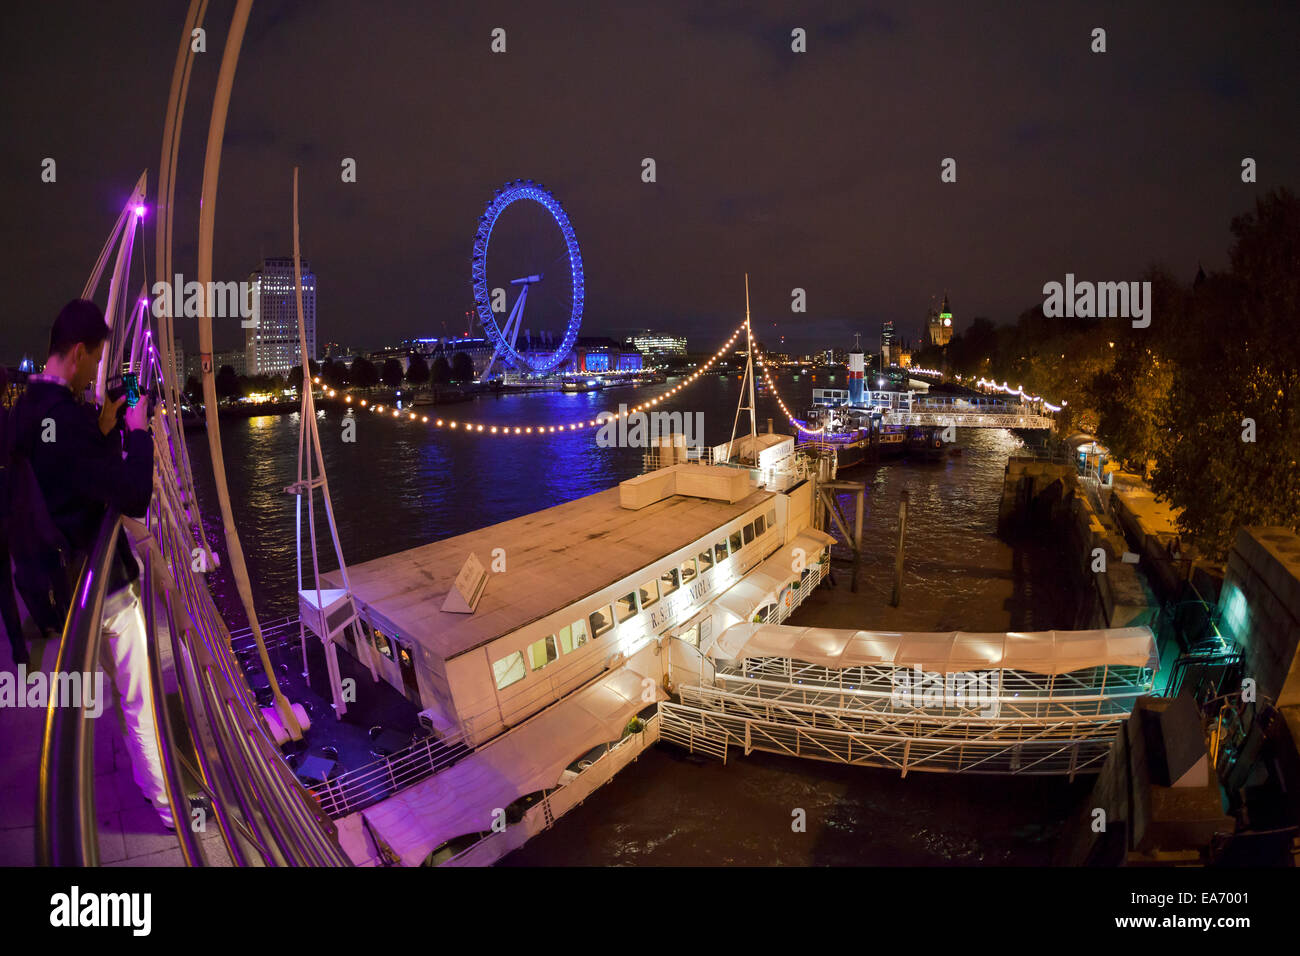 Restaurant ship Hispaniola berthed on the Thames with the London Eye in the background Stock Photo